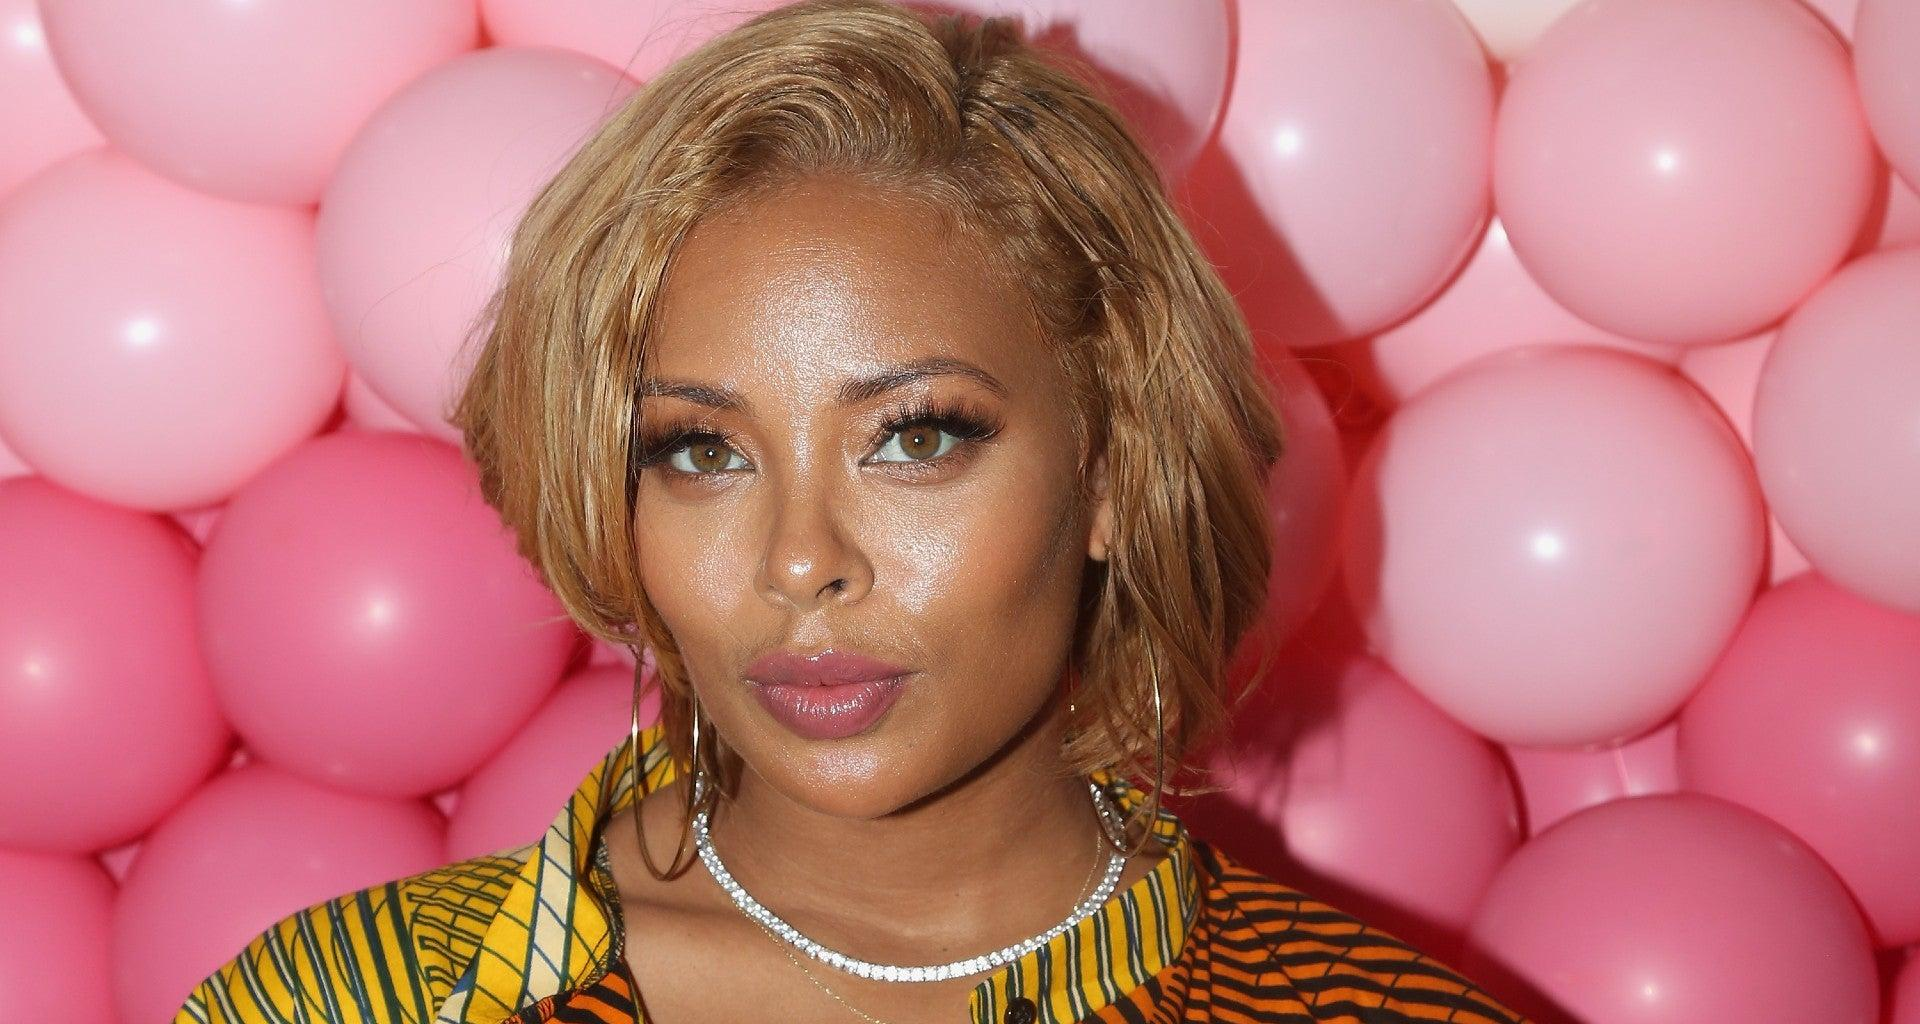 Eva Marcille Looks Amazing In This Fresh Orange Outfit - Check Out The Video Here